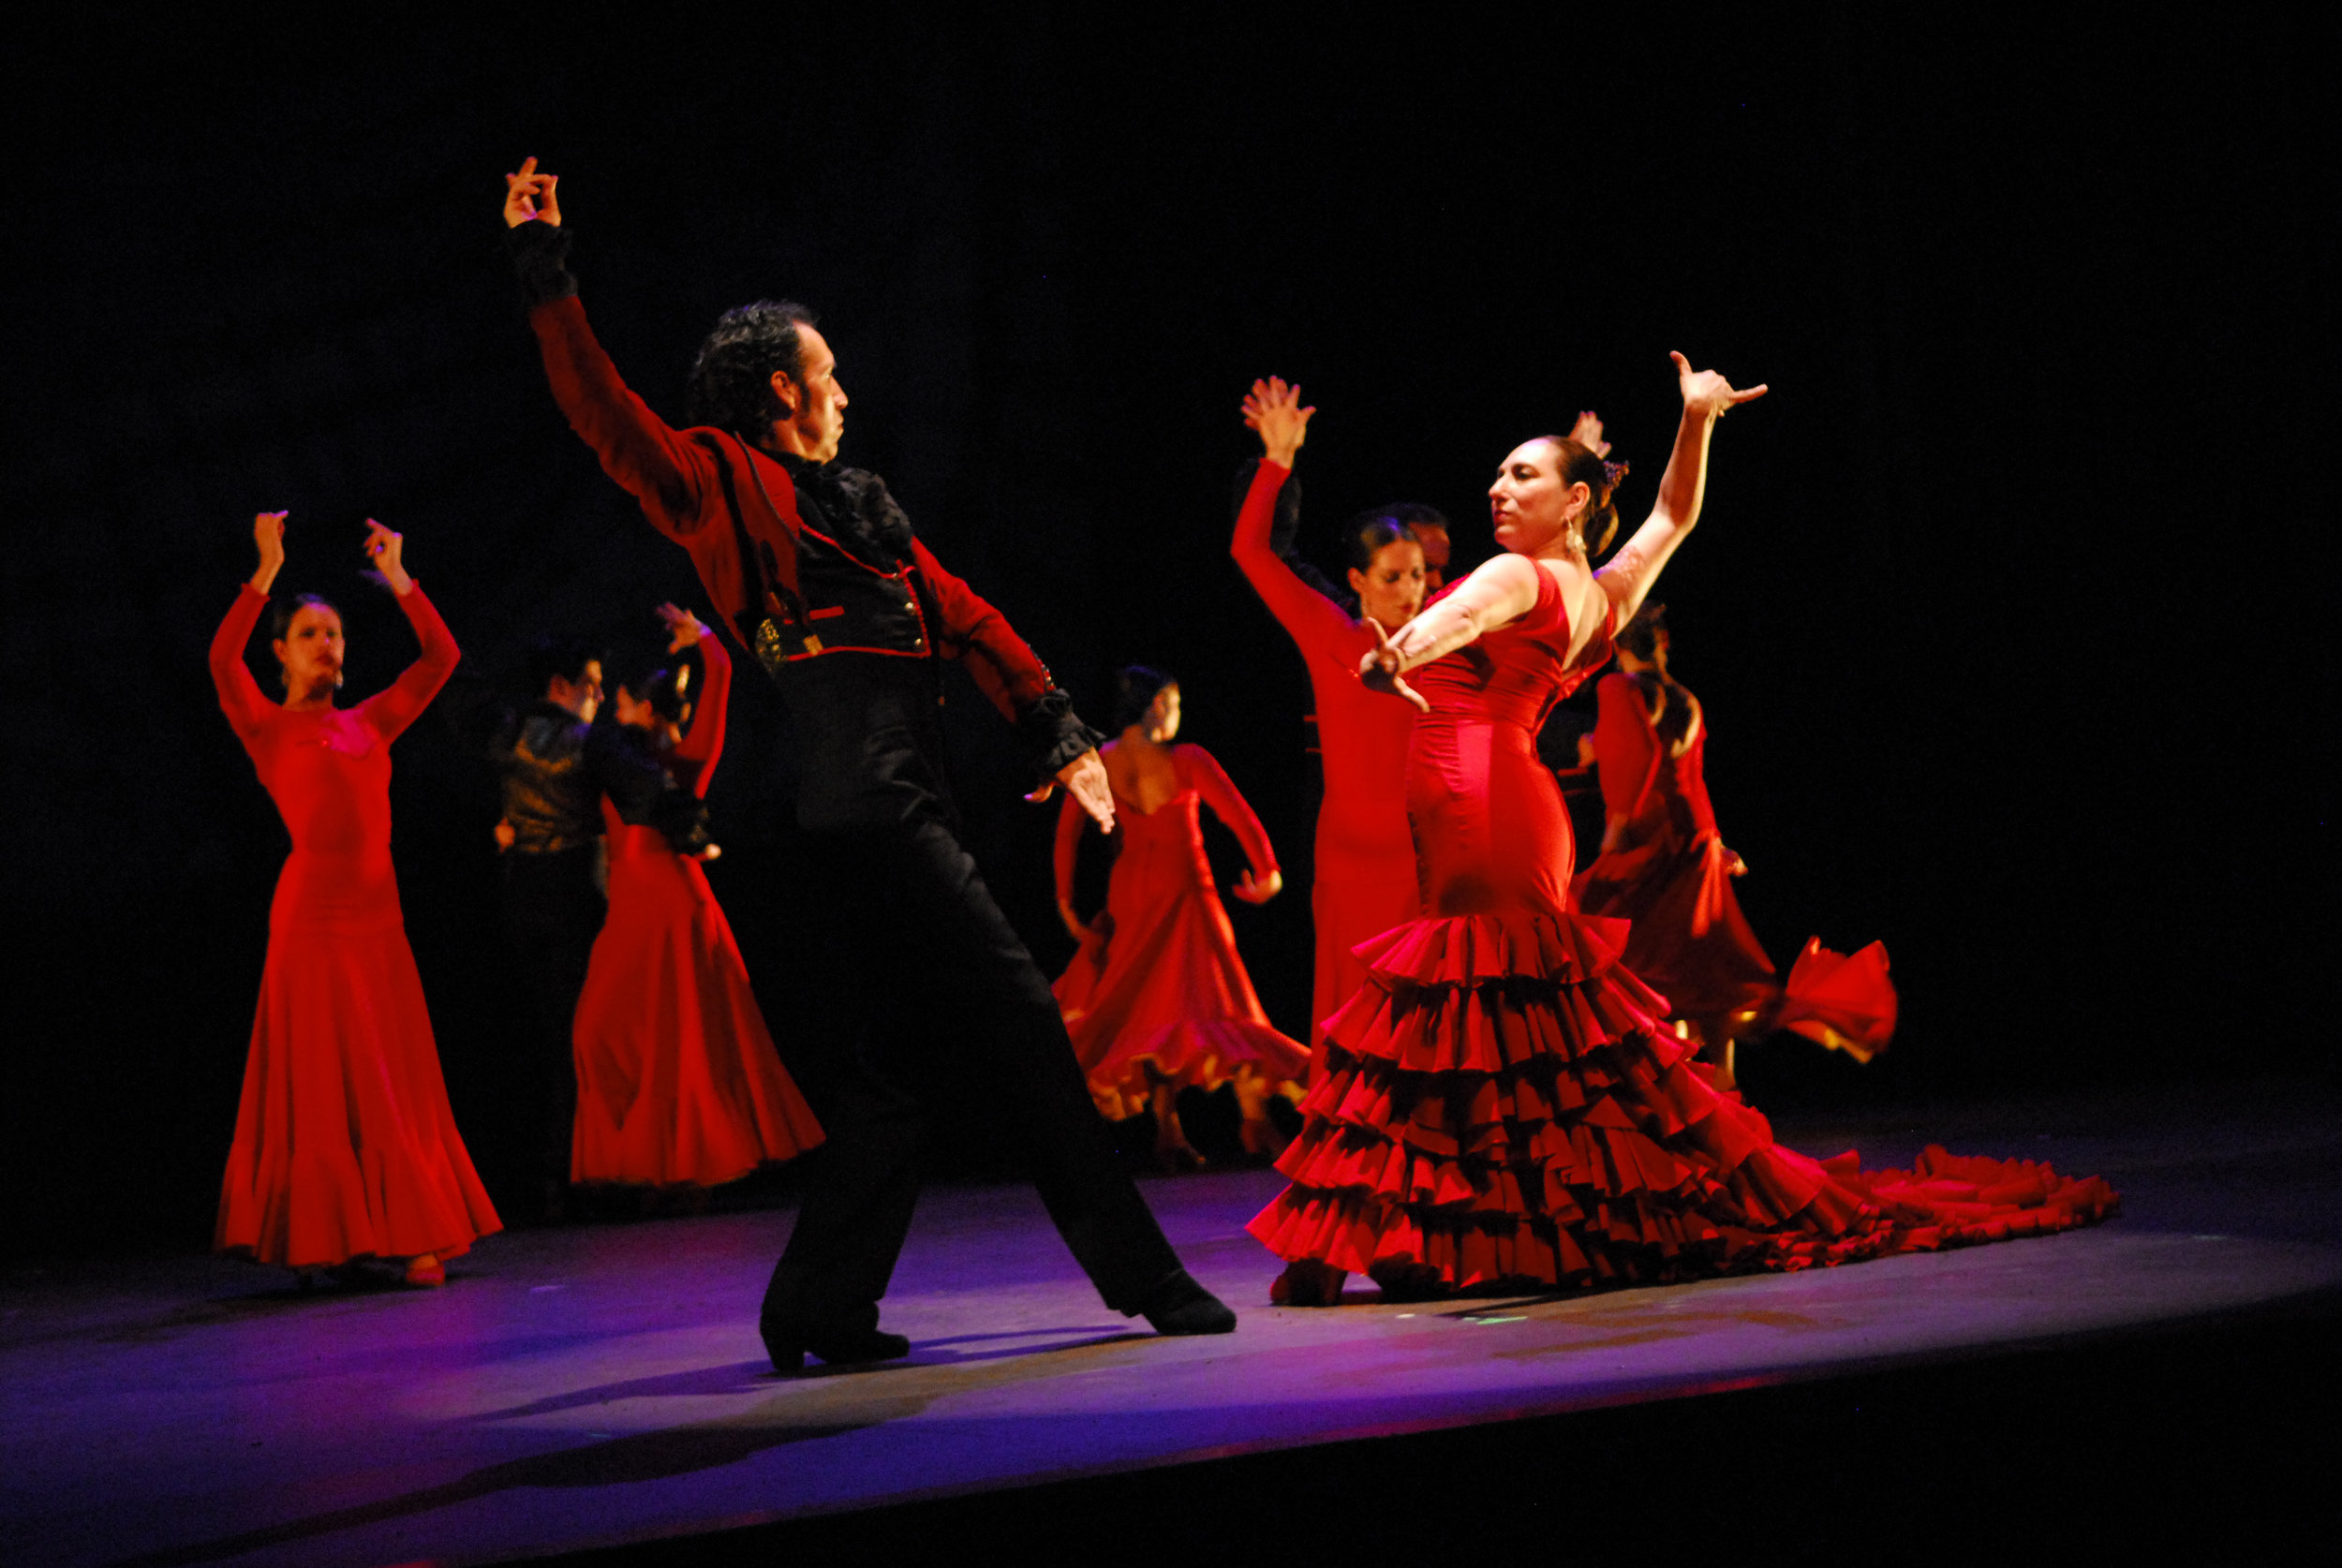 Irma Suarez Ruiz & Jorge Perez, First Dancers of Ensemble Espanol Spanish Dance Theater in Dame Libby Komaiko's, Bolero.Photo by Joe Davis..jpg